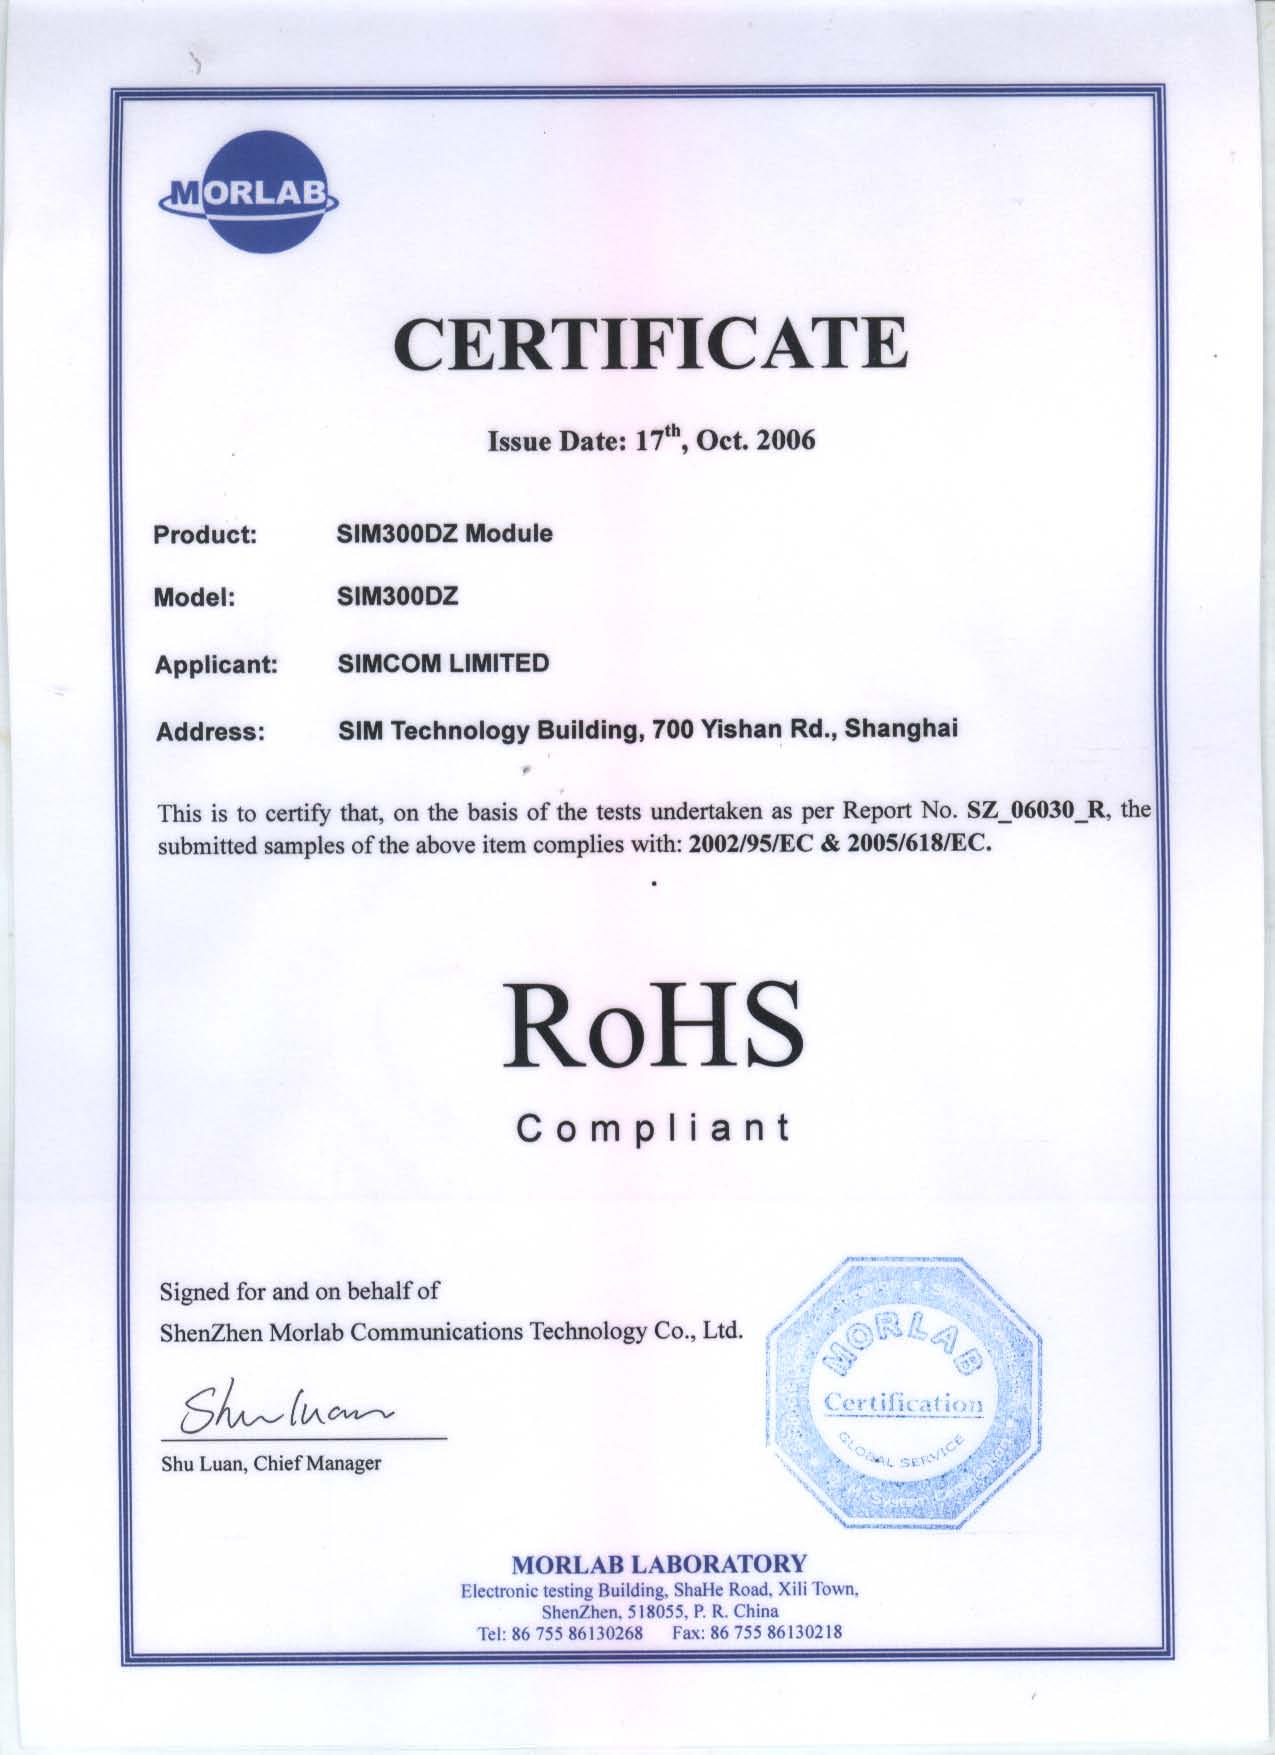 Pin rohs certificate of compliance on pinterest for Reach certificate of compliance template